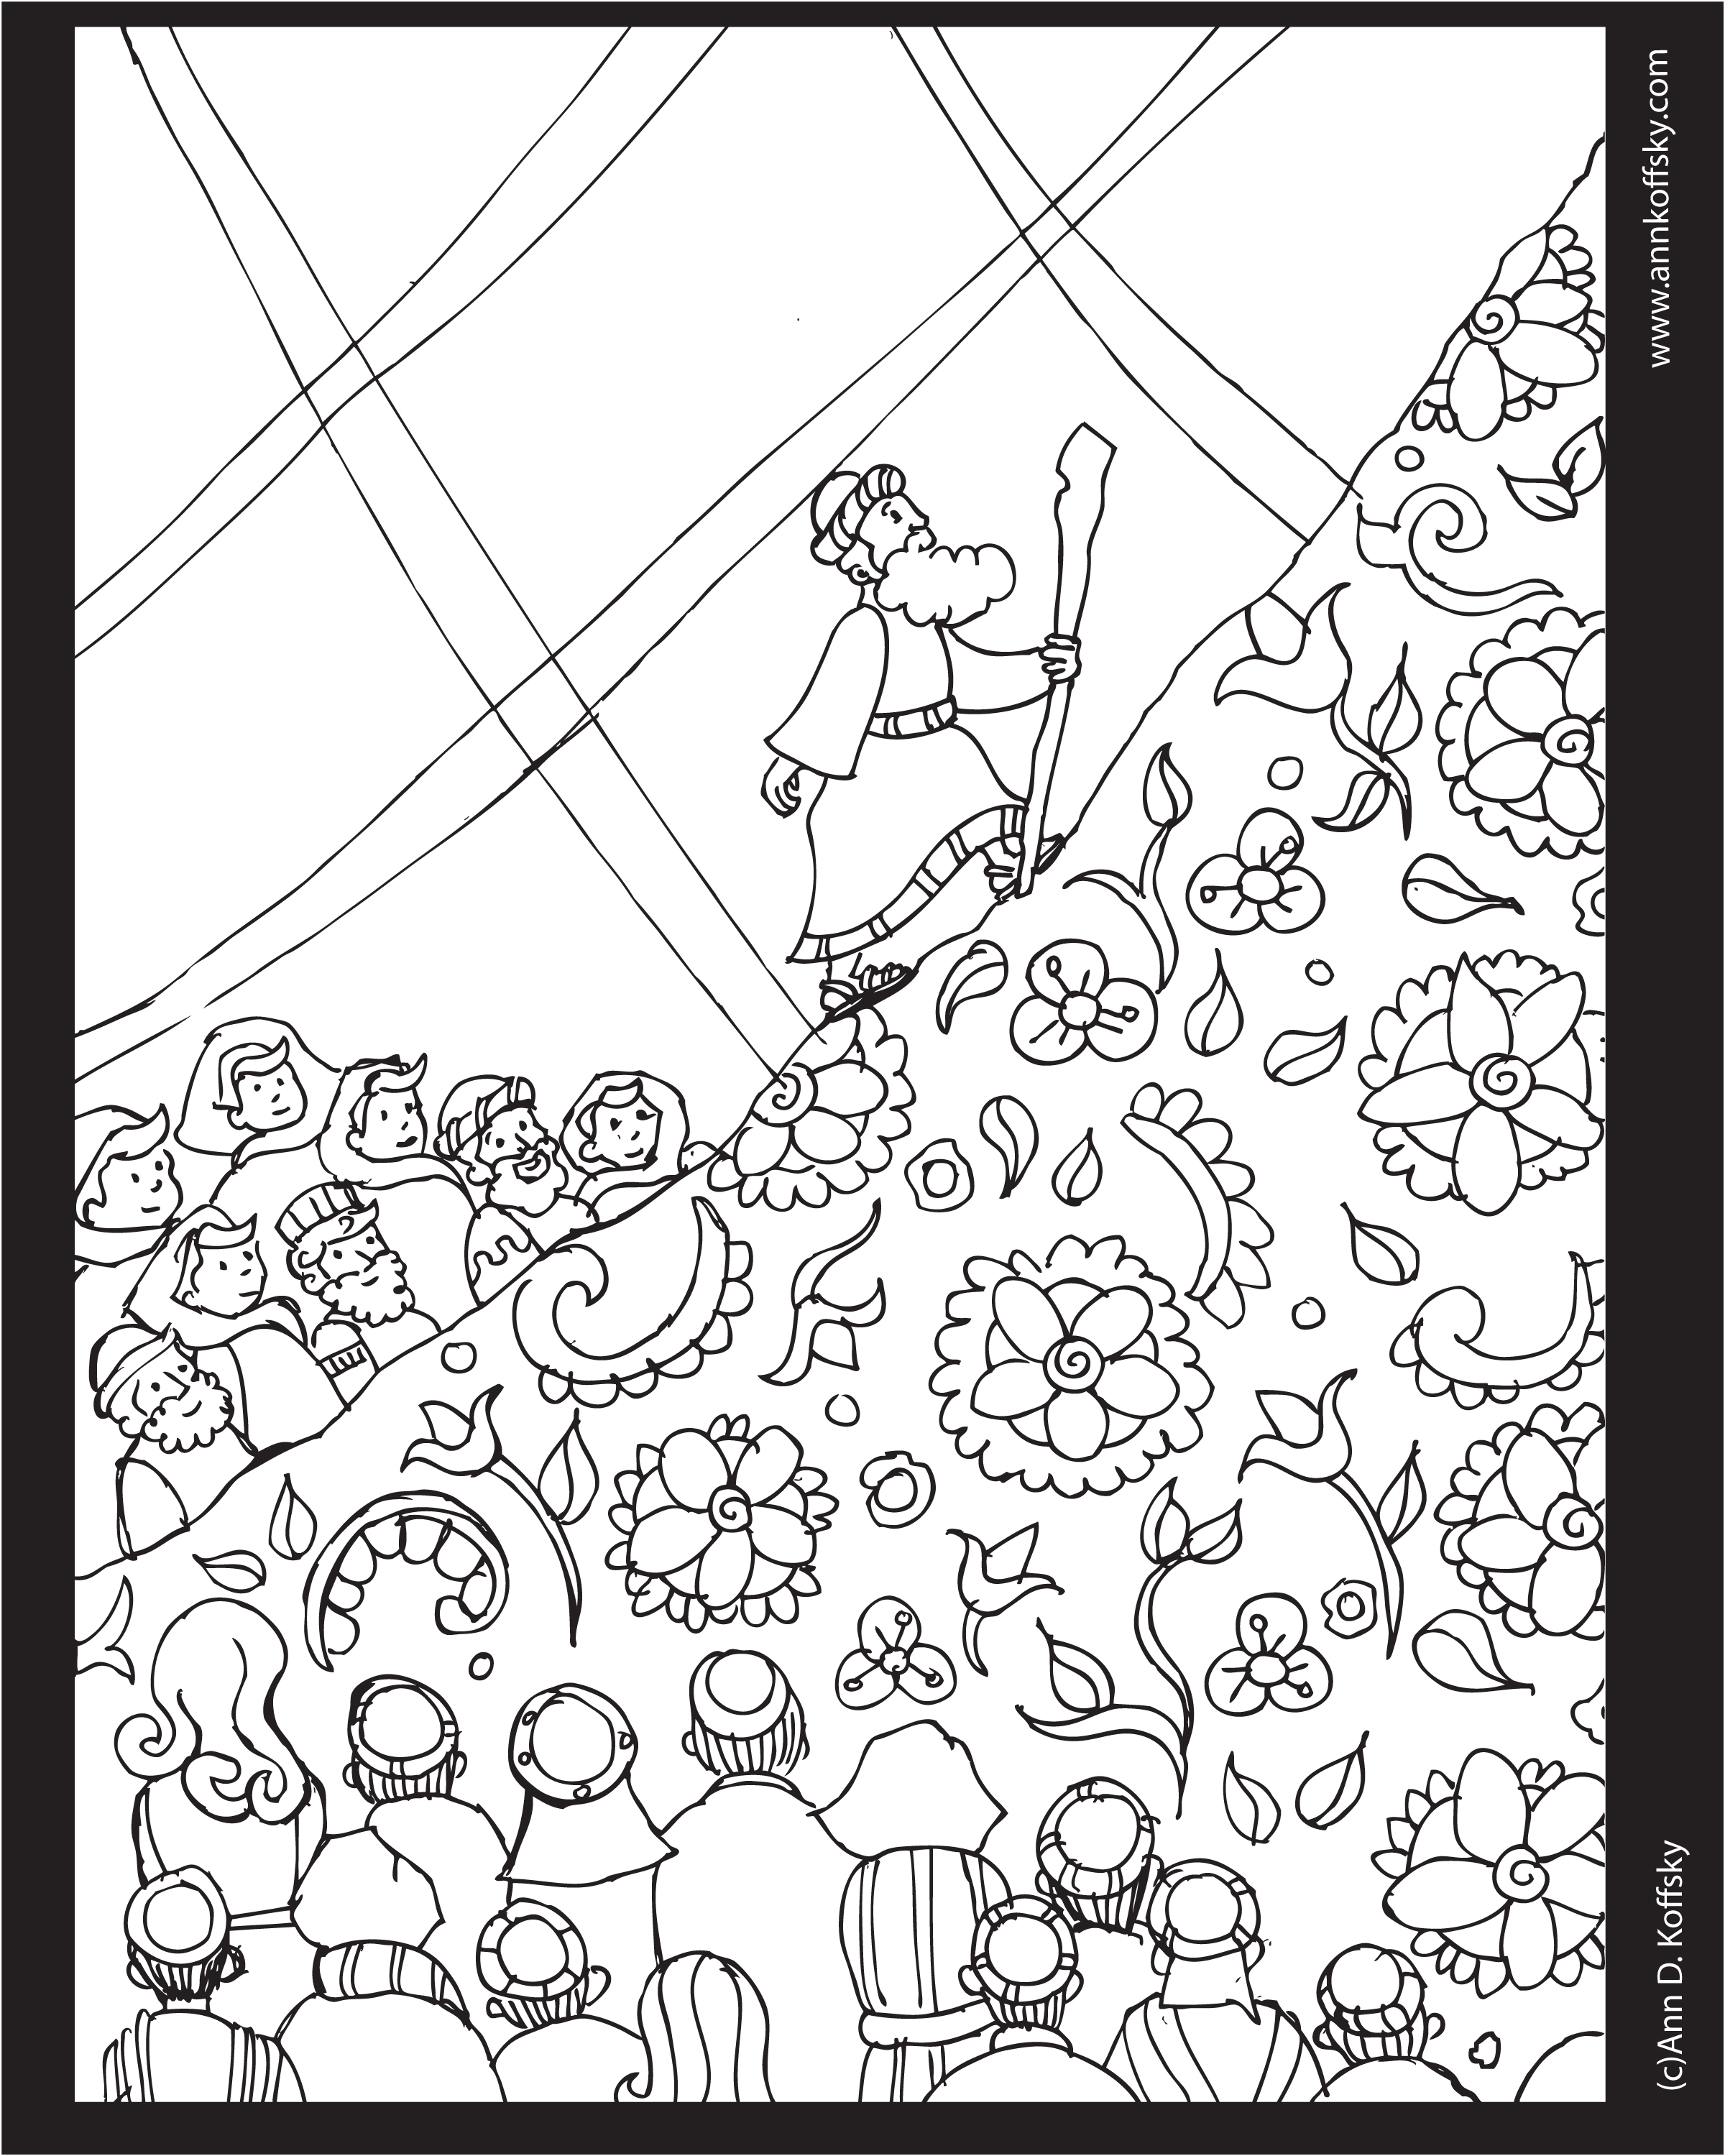 Shavuot-Jewish Holiday Coloring Page